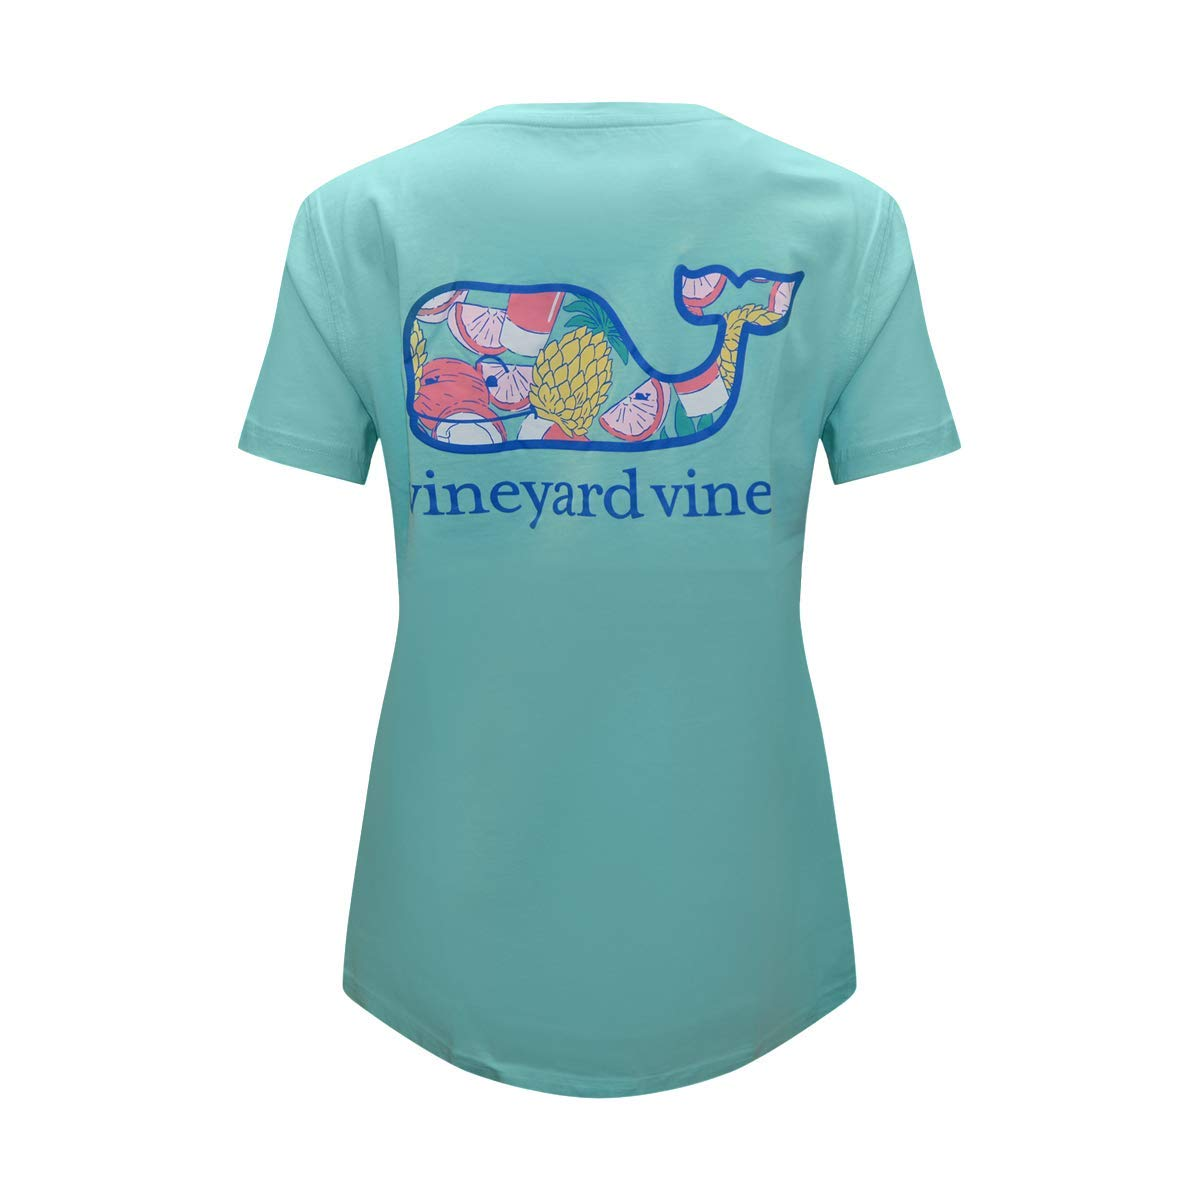 2f3878263 Amazon.com: Vineyard Vines Women's Short Sleeve Graphic Pocket Cotton  T-Shirt: Clothing